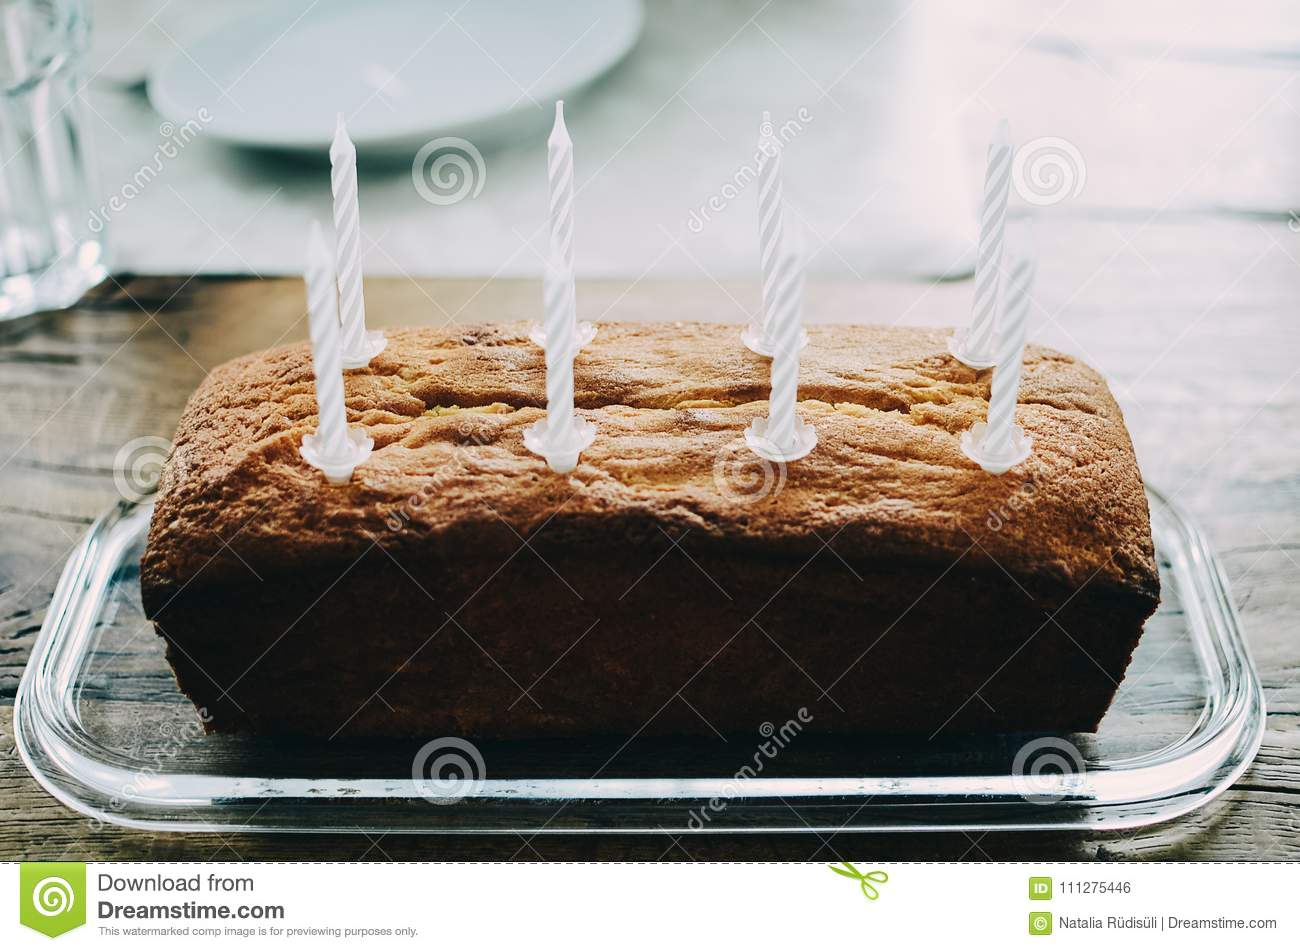 Birthday Cake Witt Eight Candles Stock Photo Image Of Chocolate